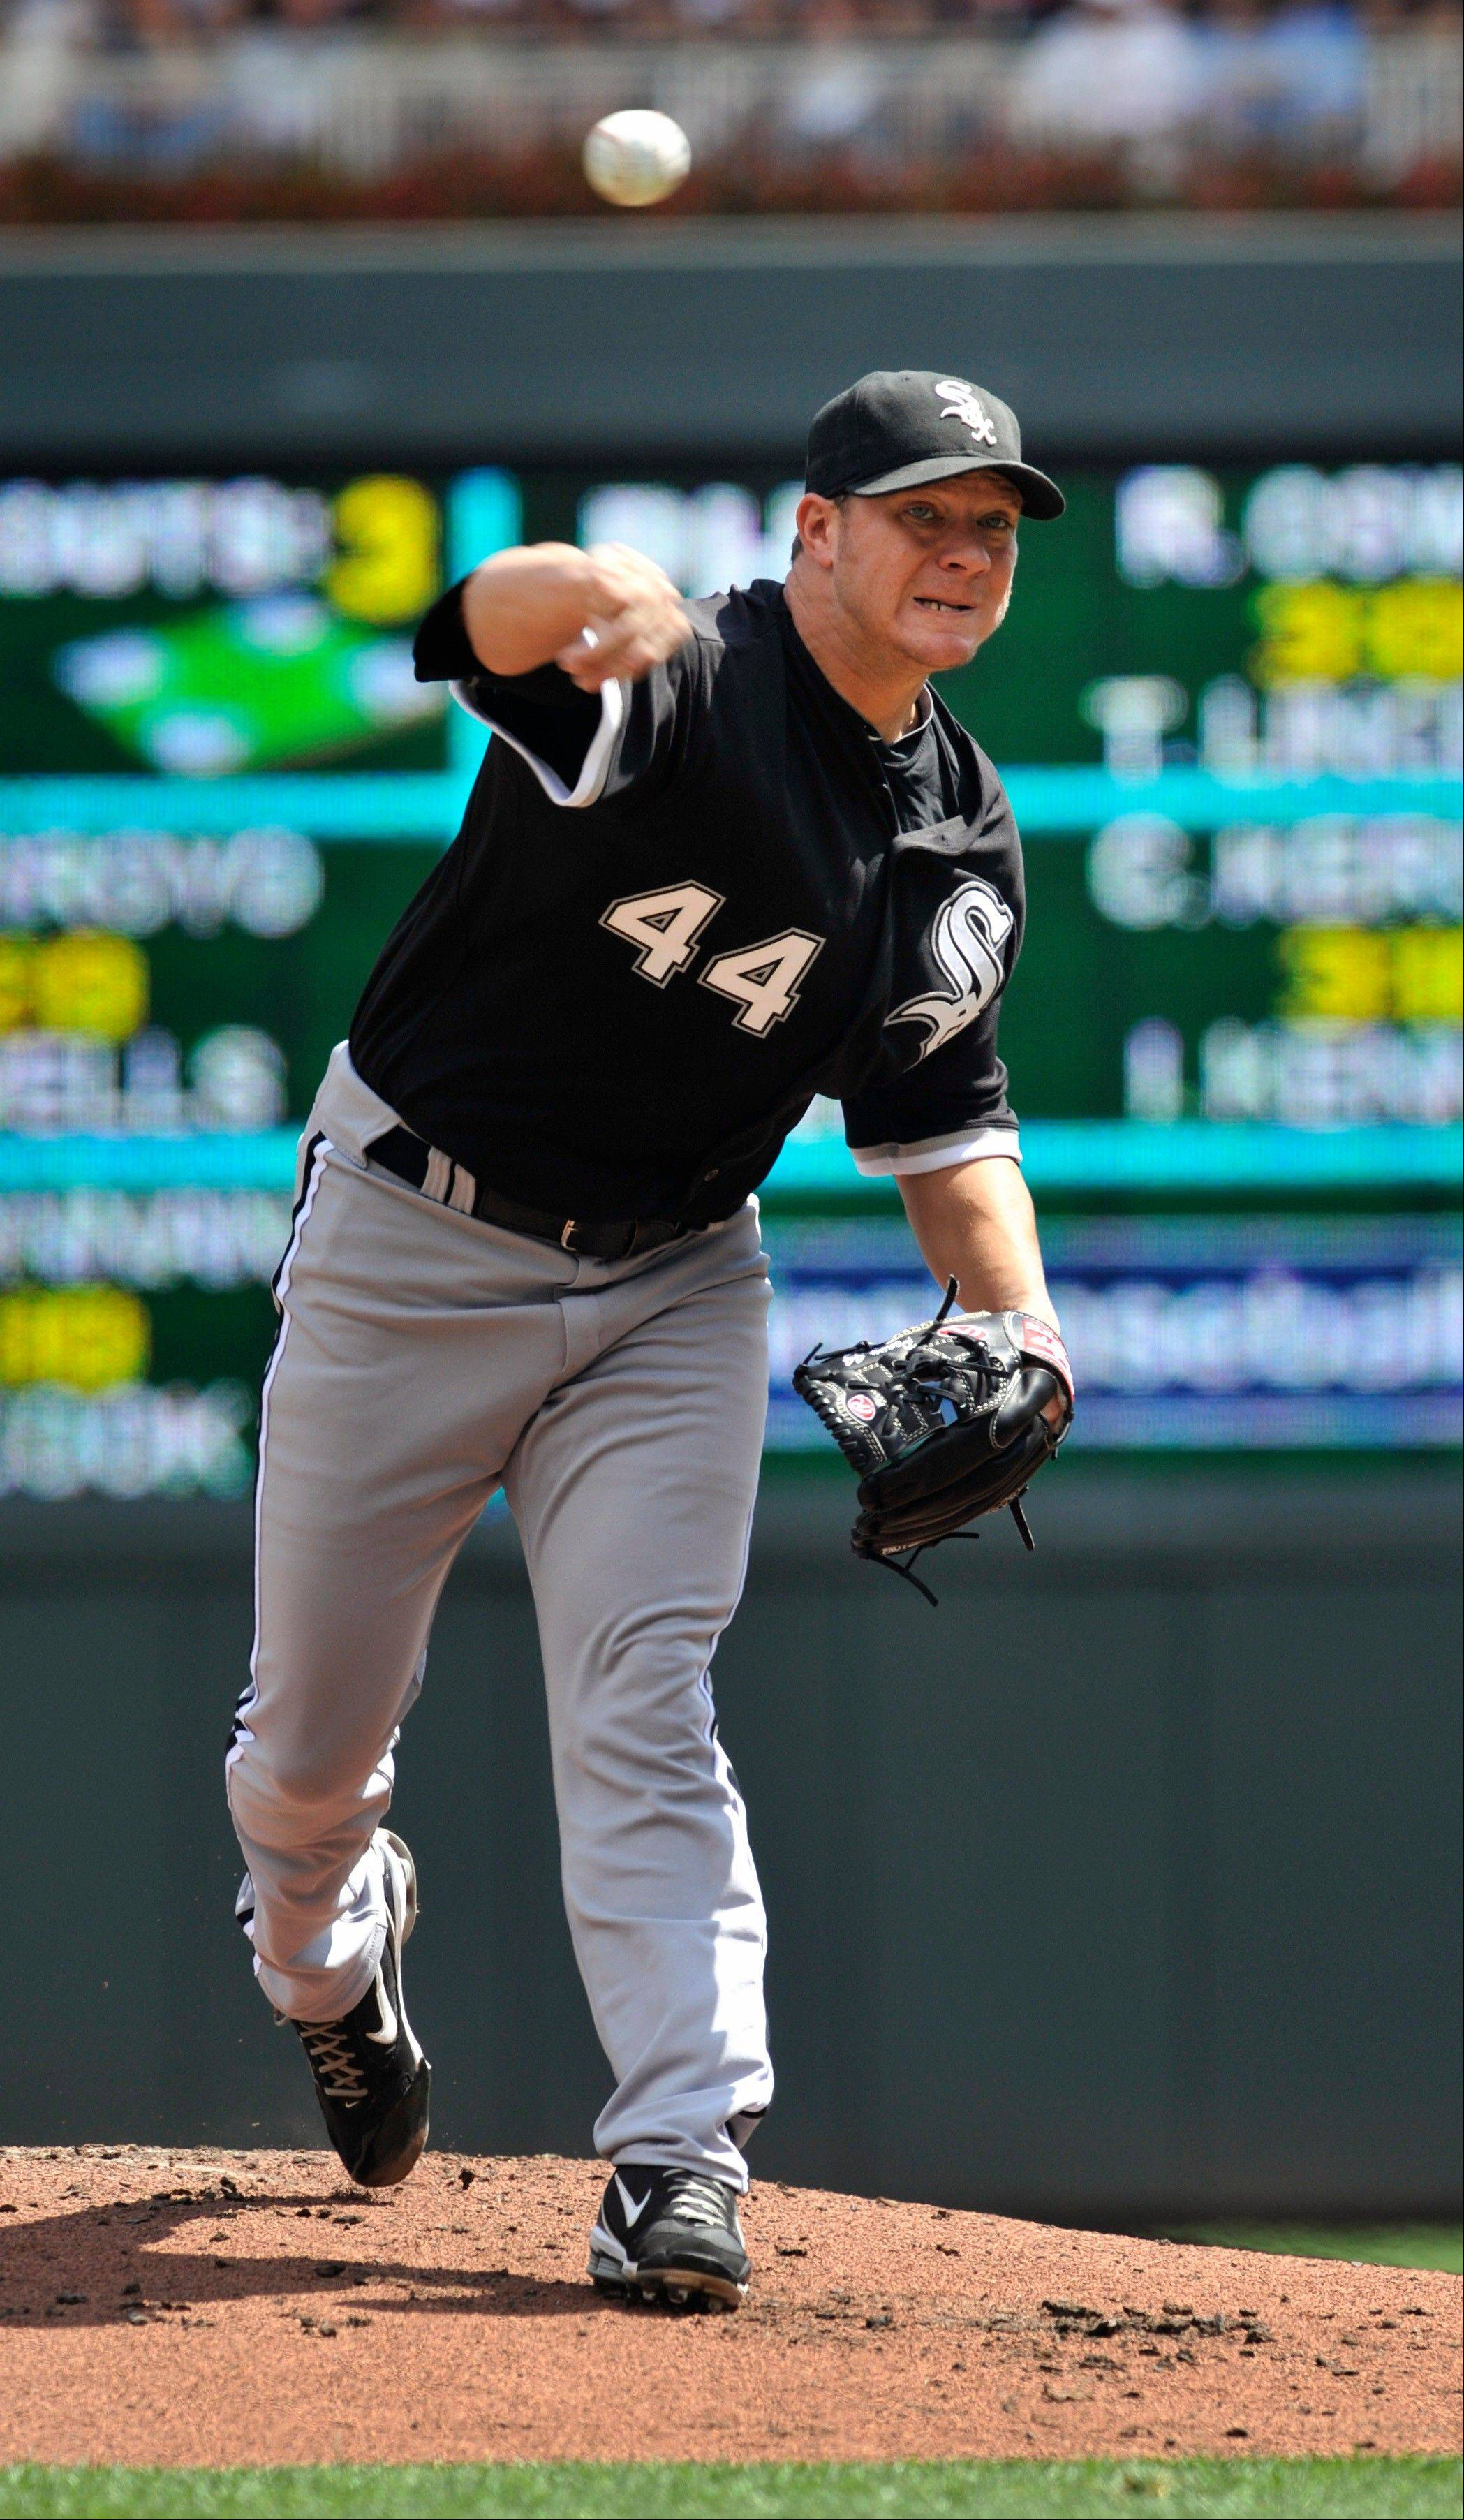 Jake Peavy worked 8 shutout innings Sunday to get the win.